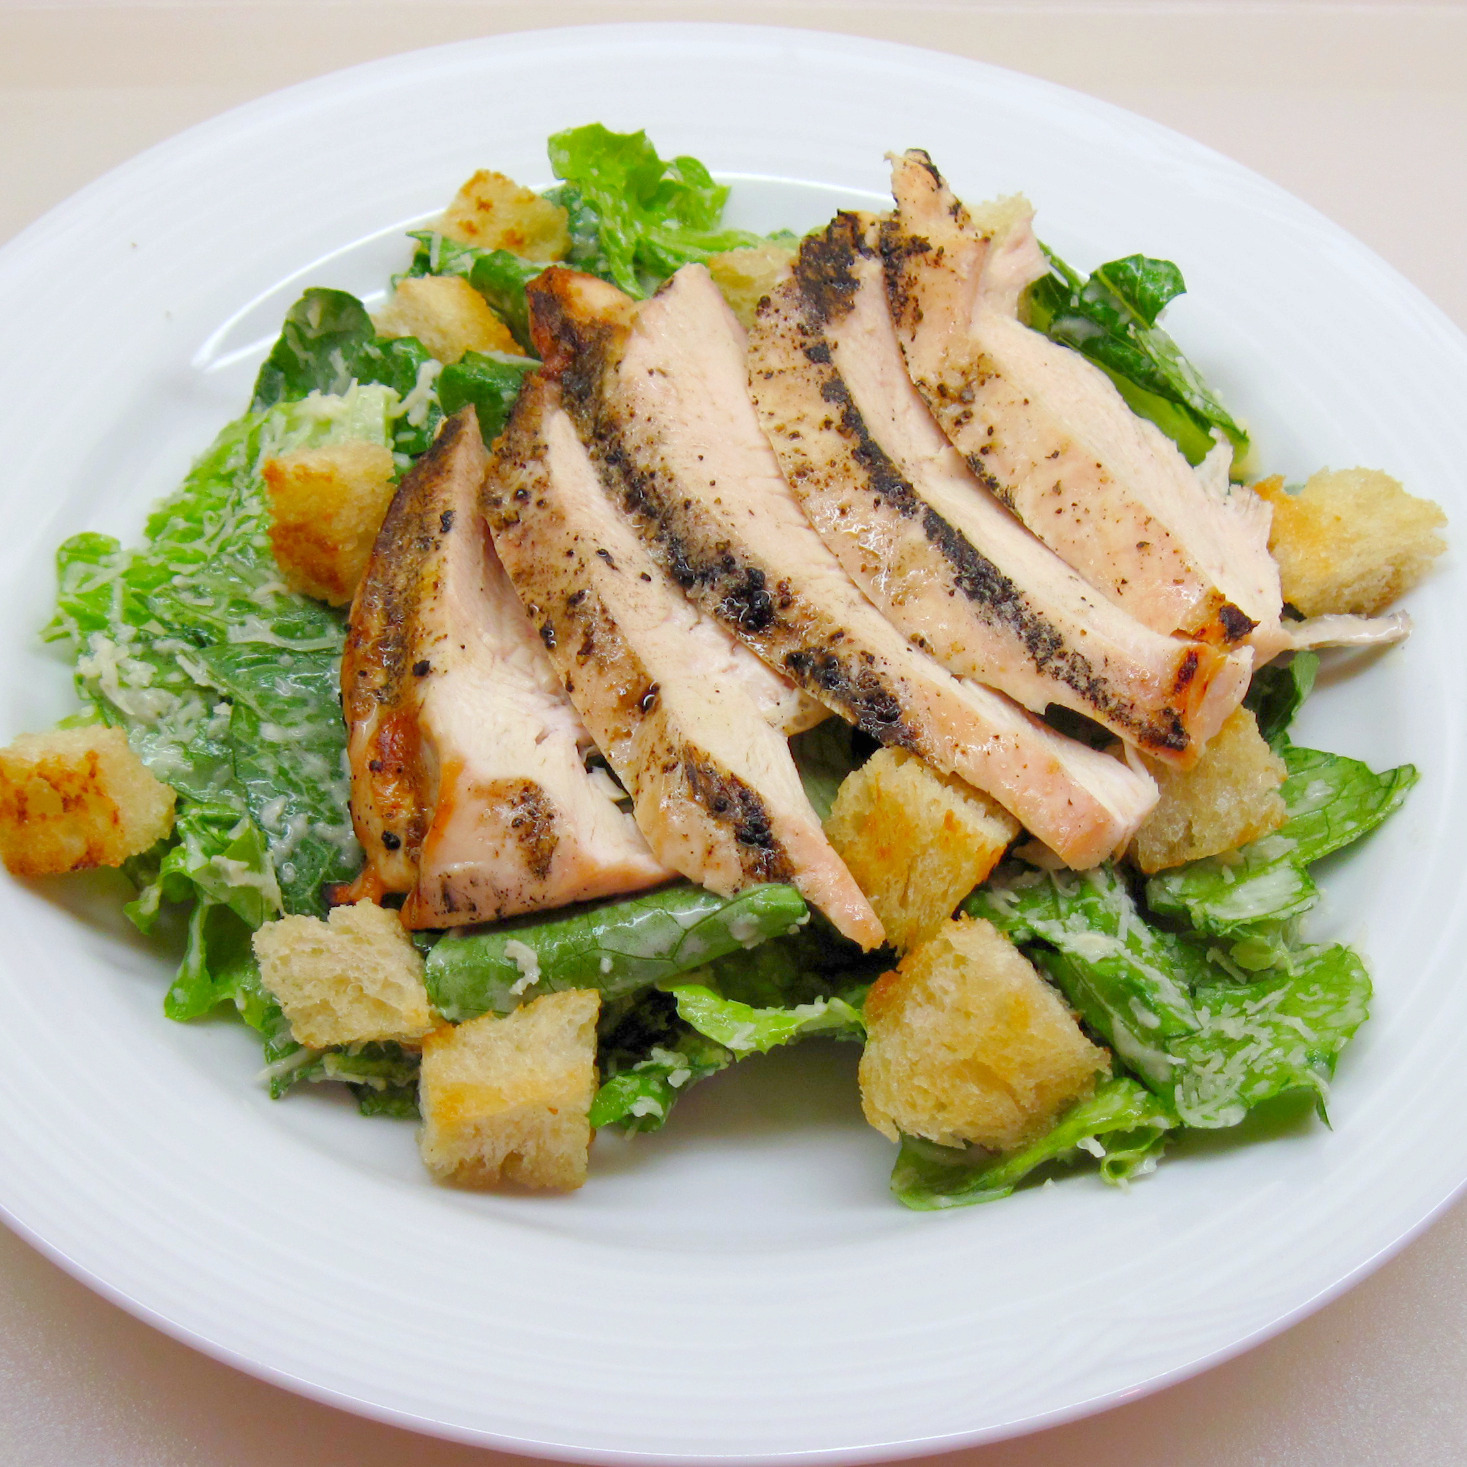 Caesar Salad (4) with Grilled Chicken